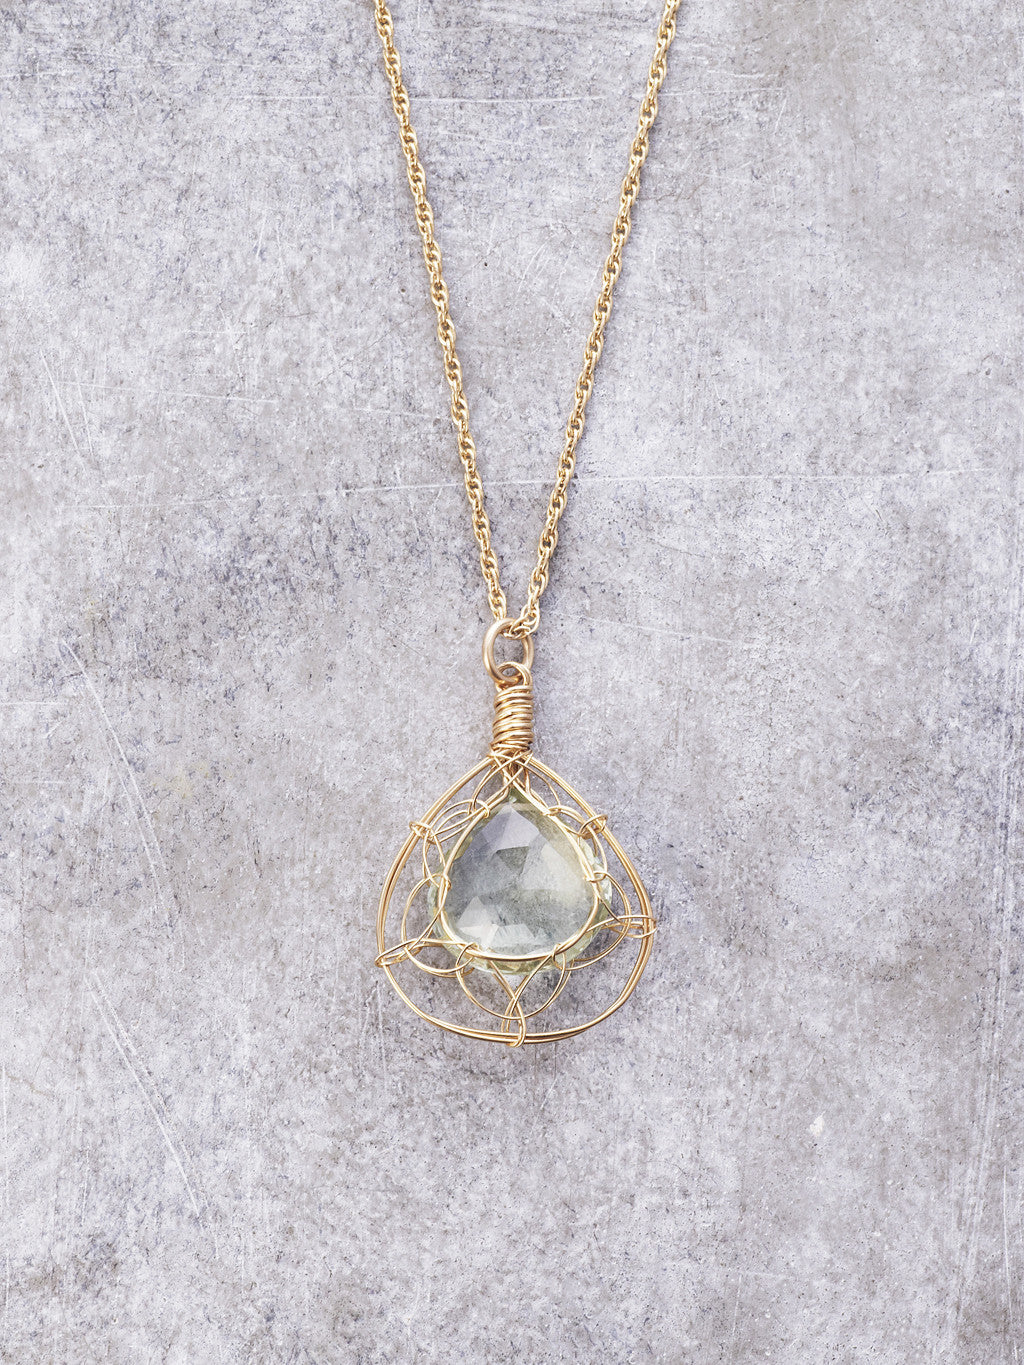 Framed Green Amethyst Necklace